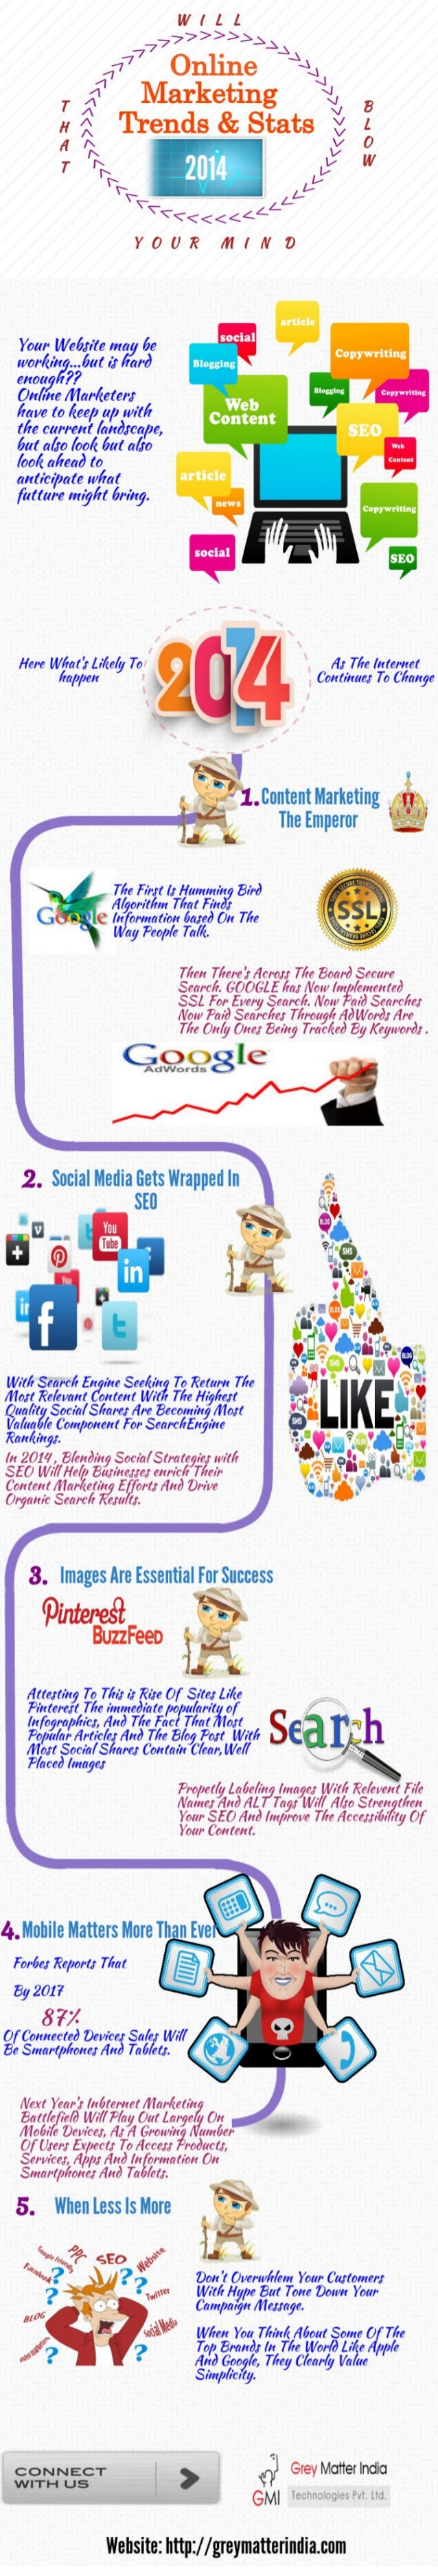 Online Marketing Trends & Statistics 2014 That Will Blow Your Mind